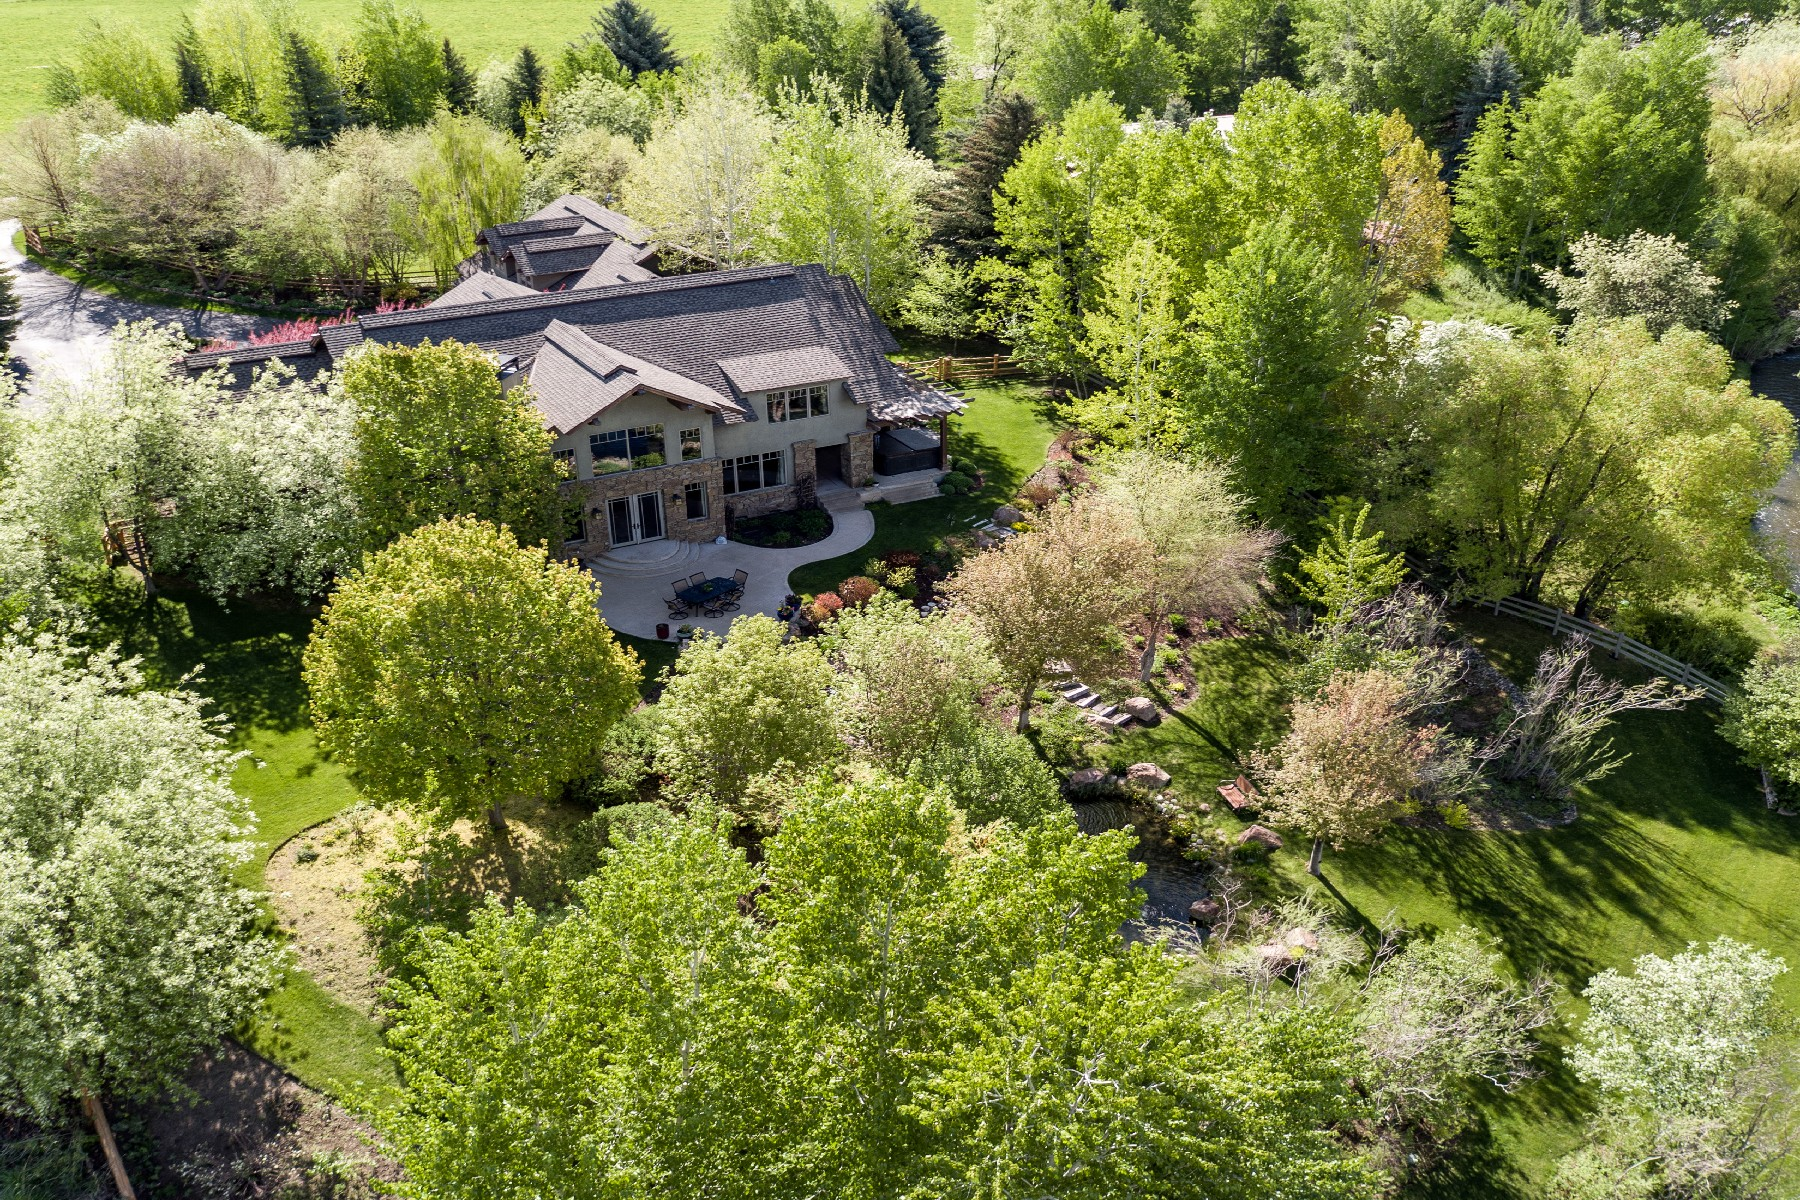 Single Family Home for Active at Simply Spectacular 207 N. Hiawatha Drive Hailey, Idaho 83333 United States